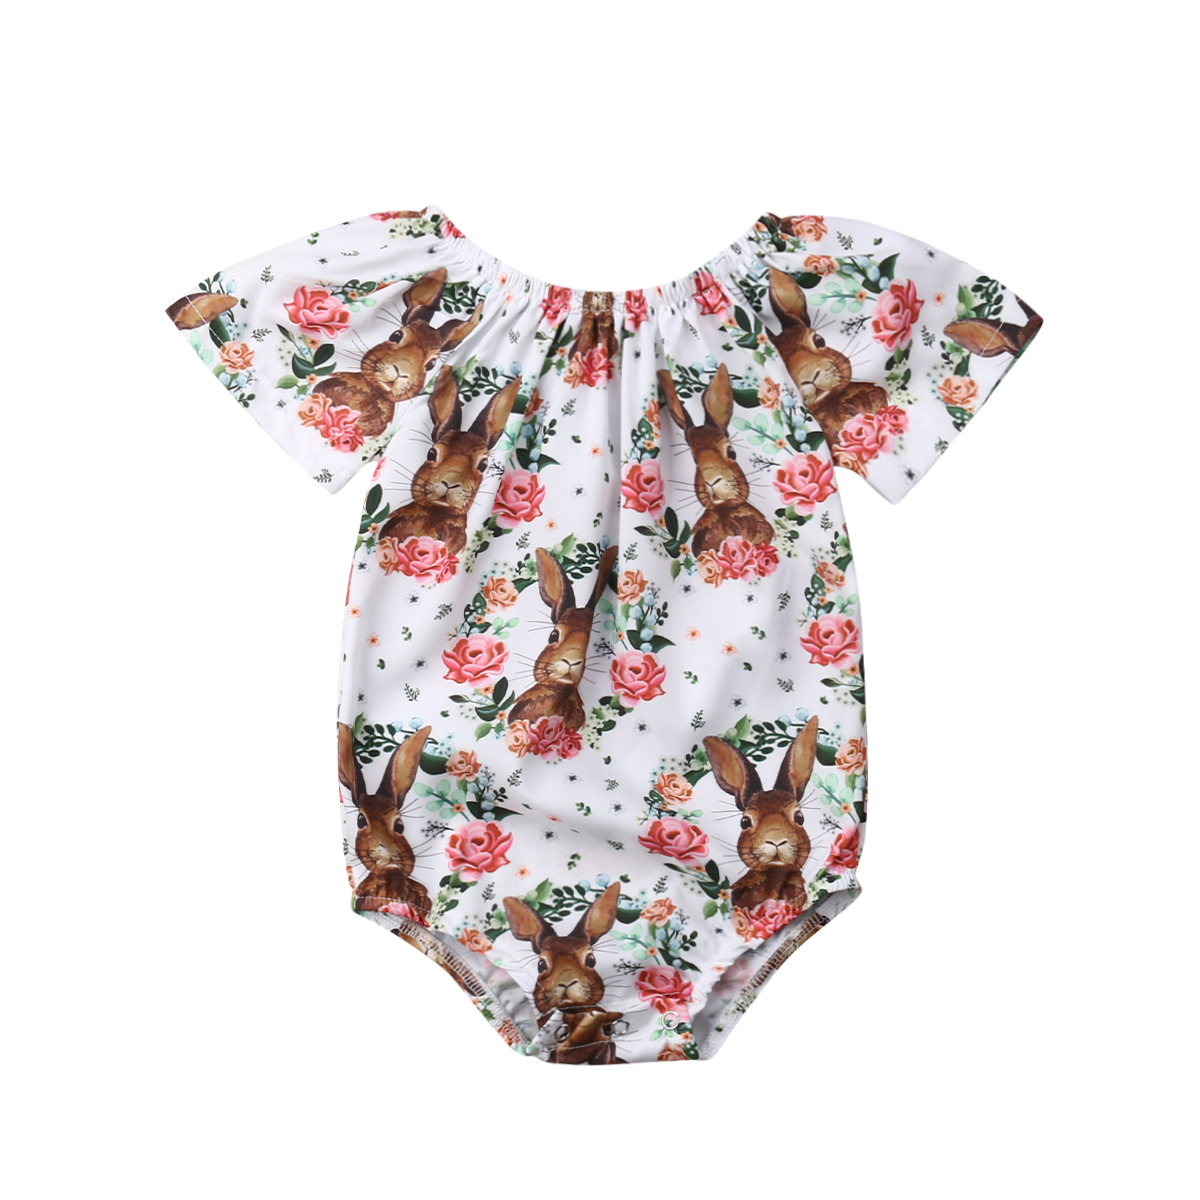 2019 Sommer Ostern Neugeborenen Kinder Baby Mädchen Bunny Floral Casualjumpsuit Body Outfits Kleidung